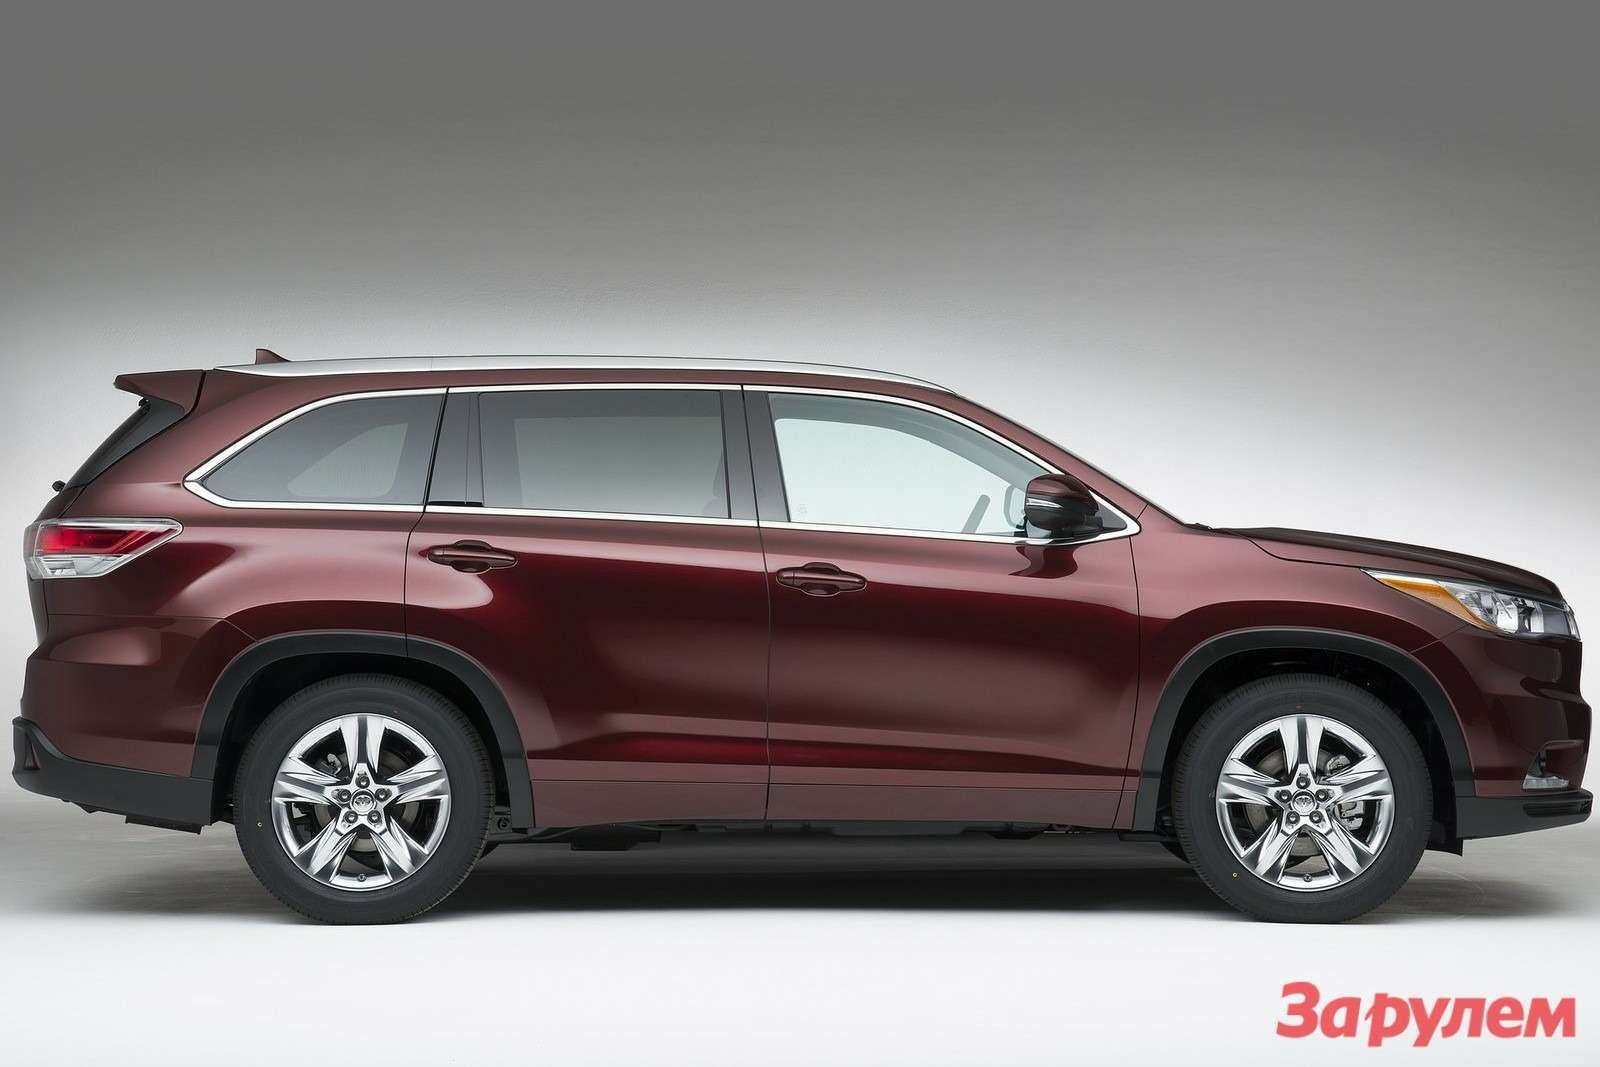 Toyota Highlander 2014 1600x1200 wallpaper 07